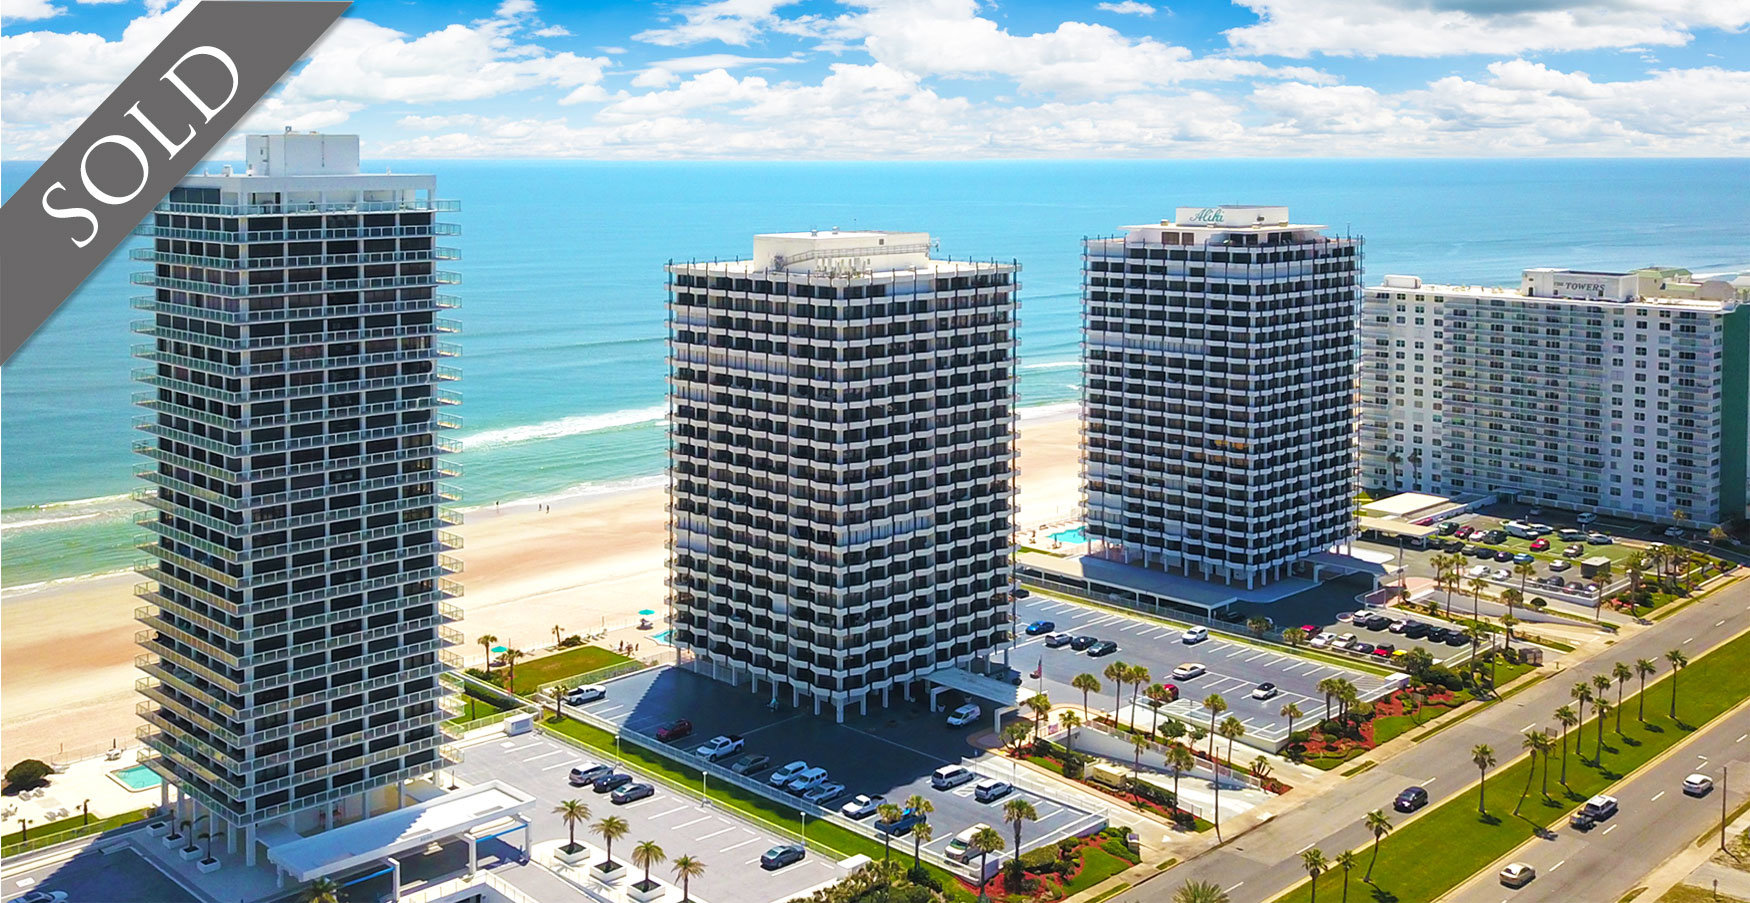 Ocean Ritz  Condos For Sale Oceanfront Real Estate at 2900 N Atlantic Ave Daytona Beach, FL  Just Sold